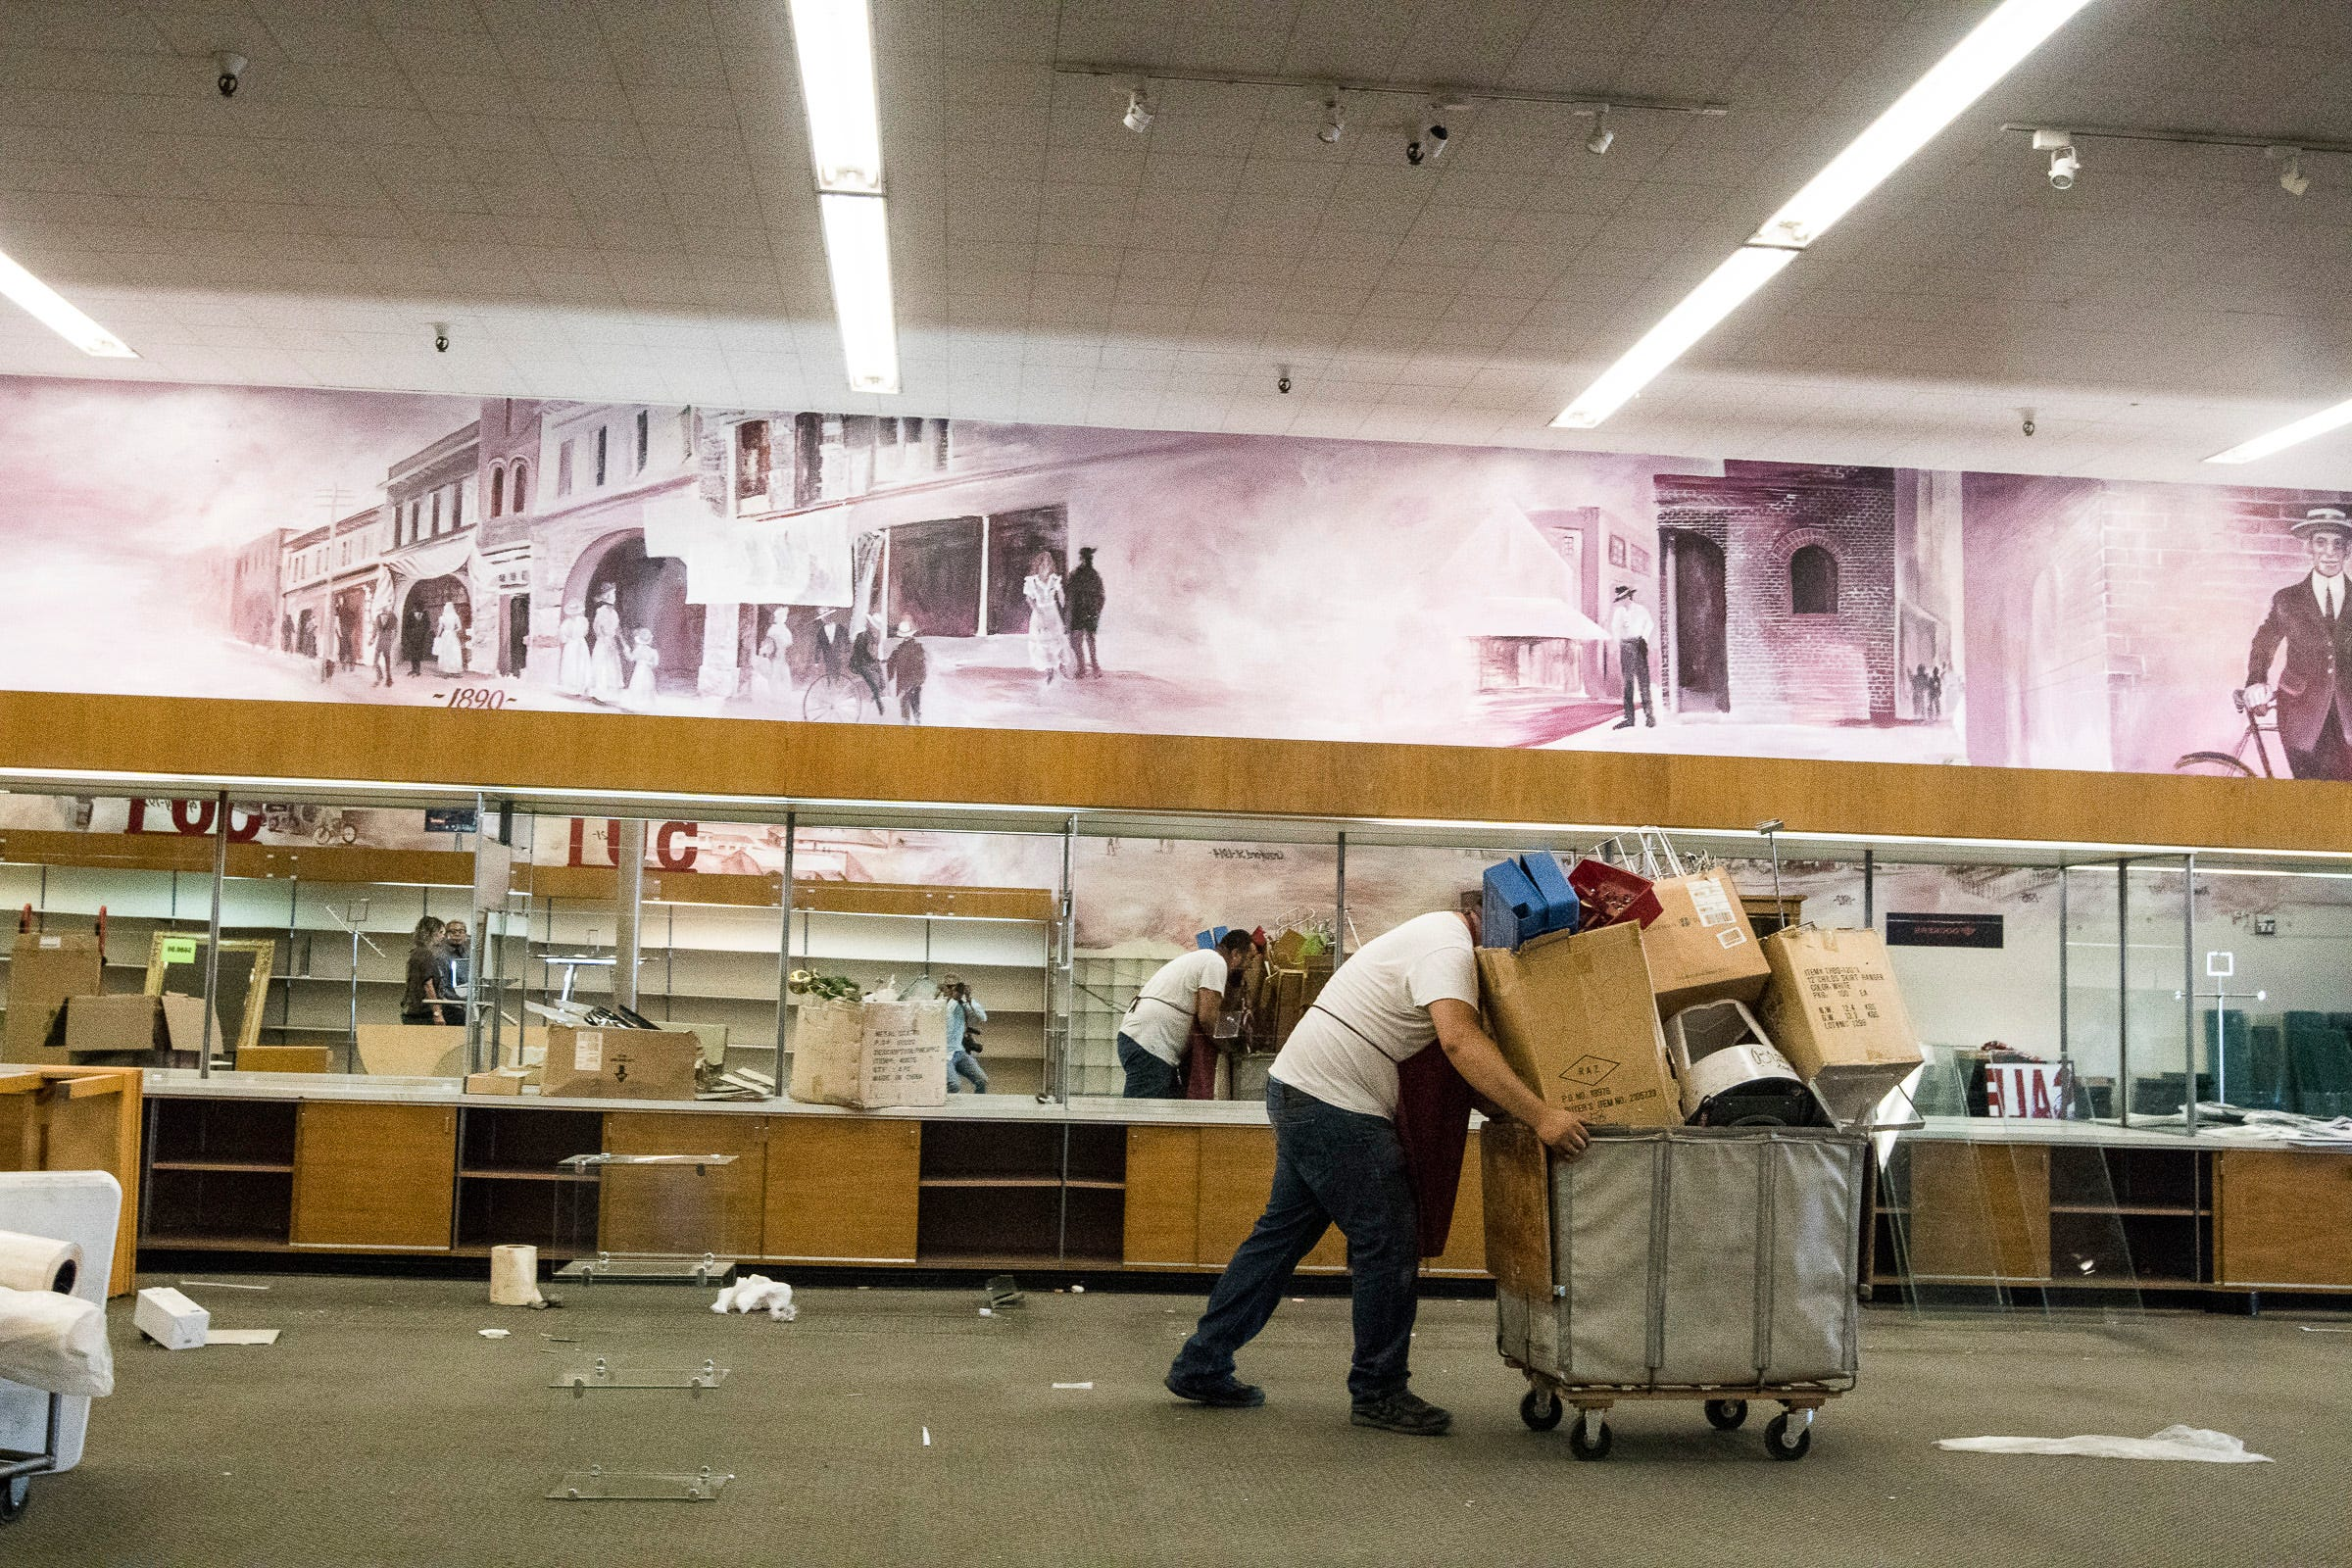 Employees move furniture and other belongings before